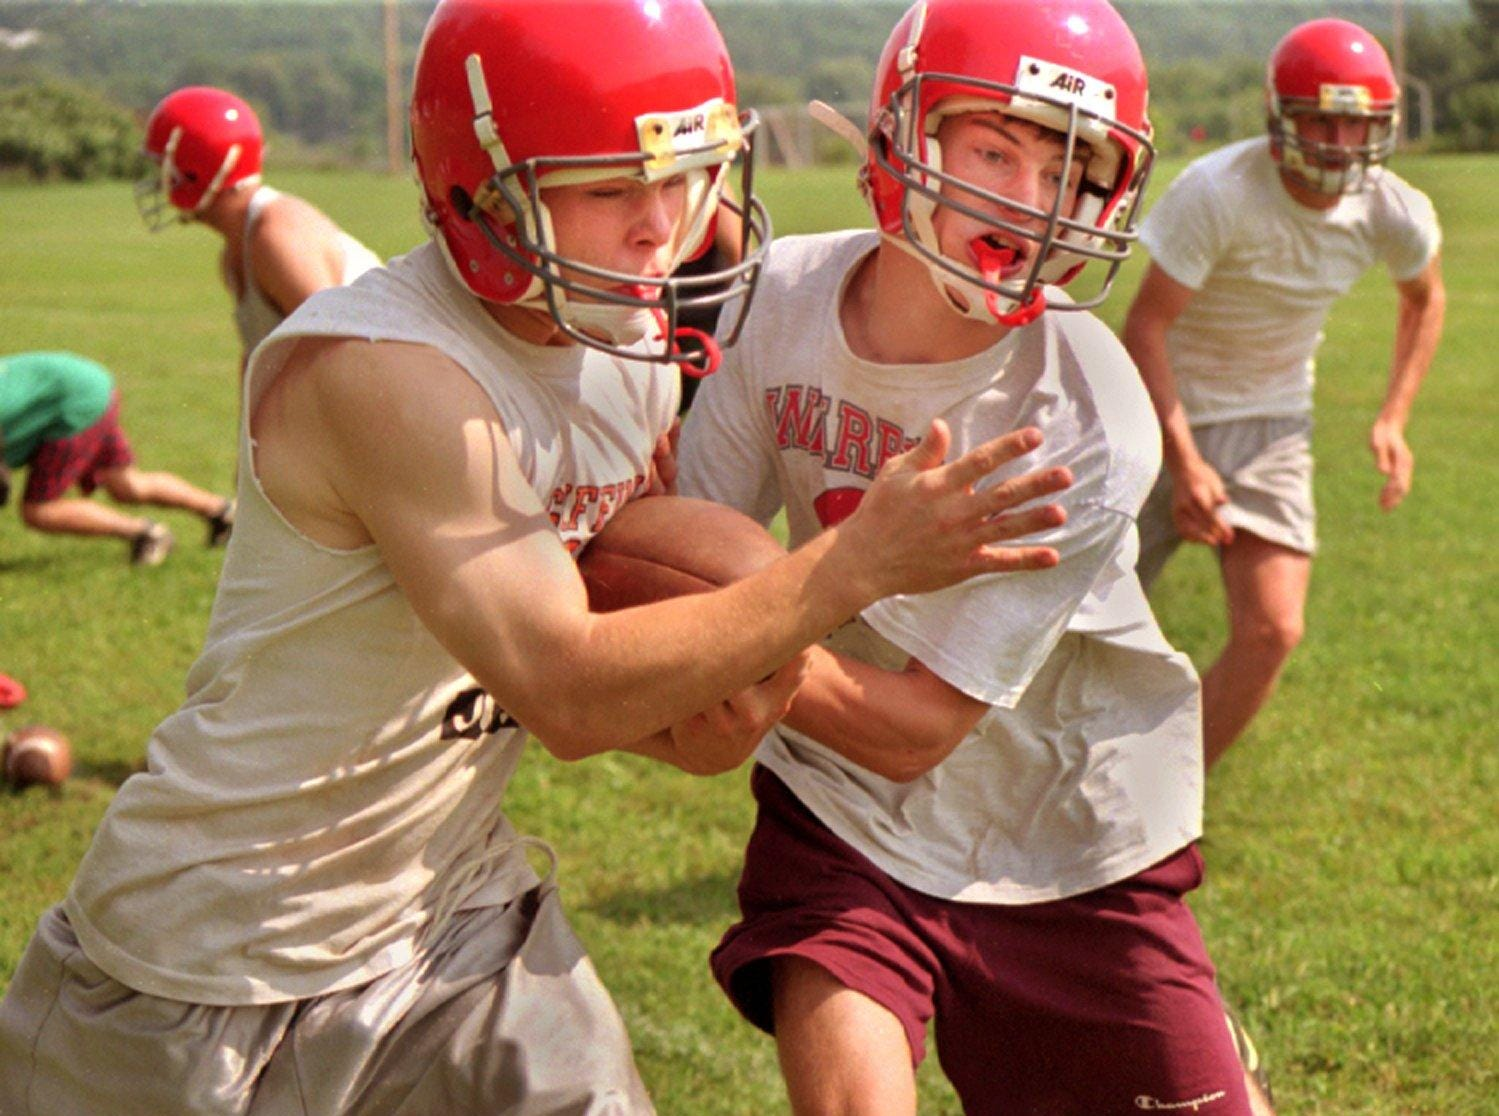 From 1996: Chenango Valley Chenango Valley Football players Leonard Gee, left, and Tom Sisson, right, fight for the ball during a recent practice.